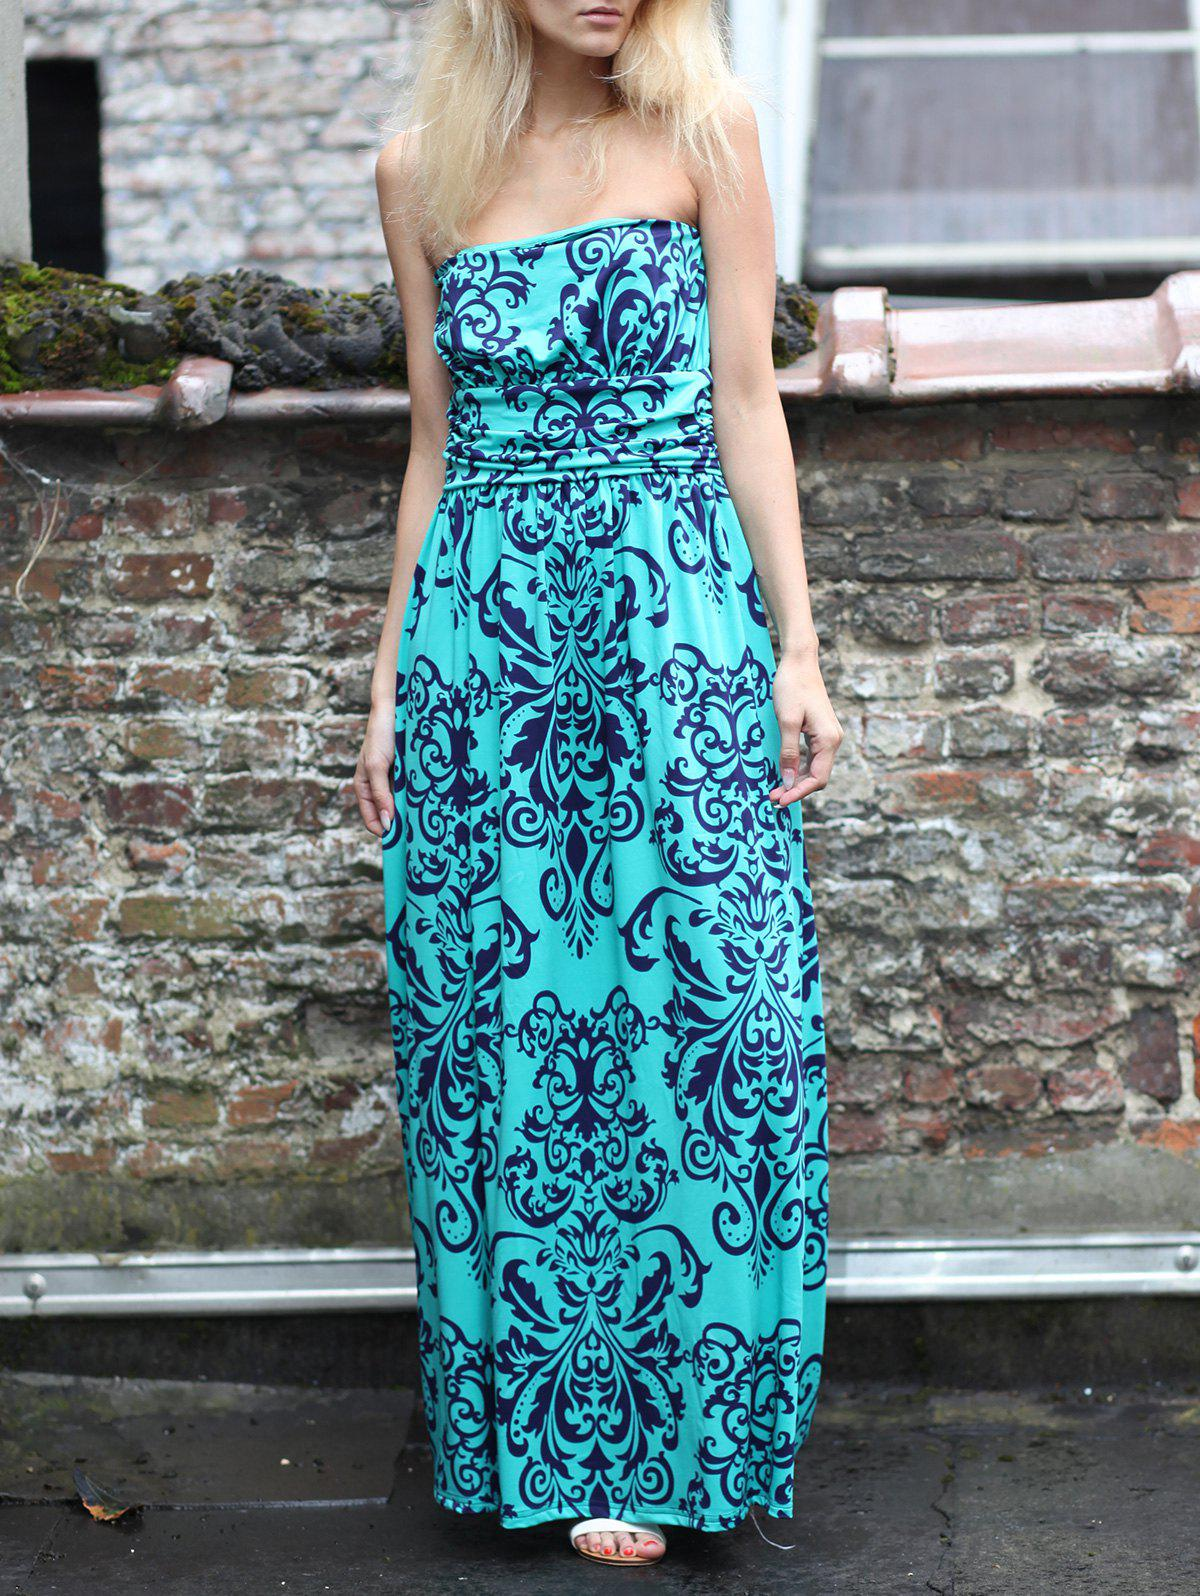 High Waist Printed Ruched Strapless Dress - TIFFANY BLUE S